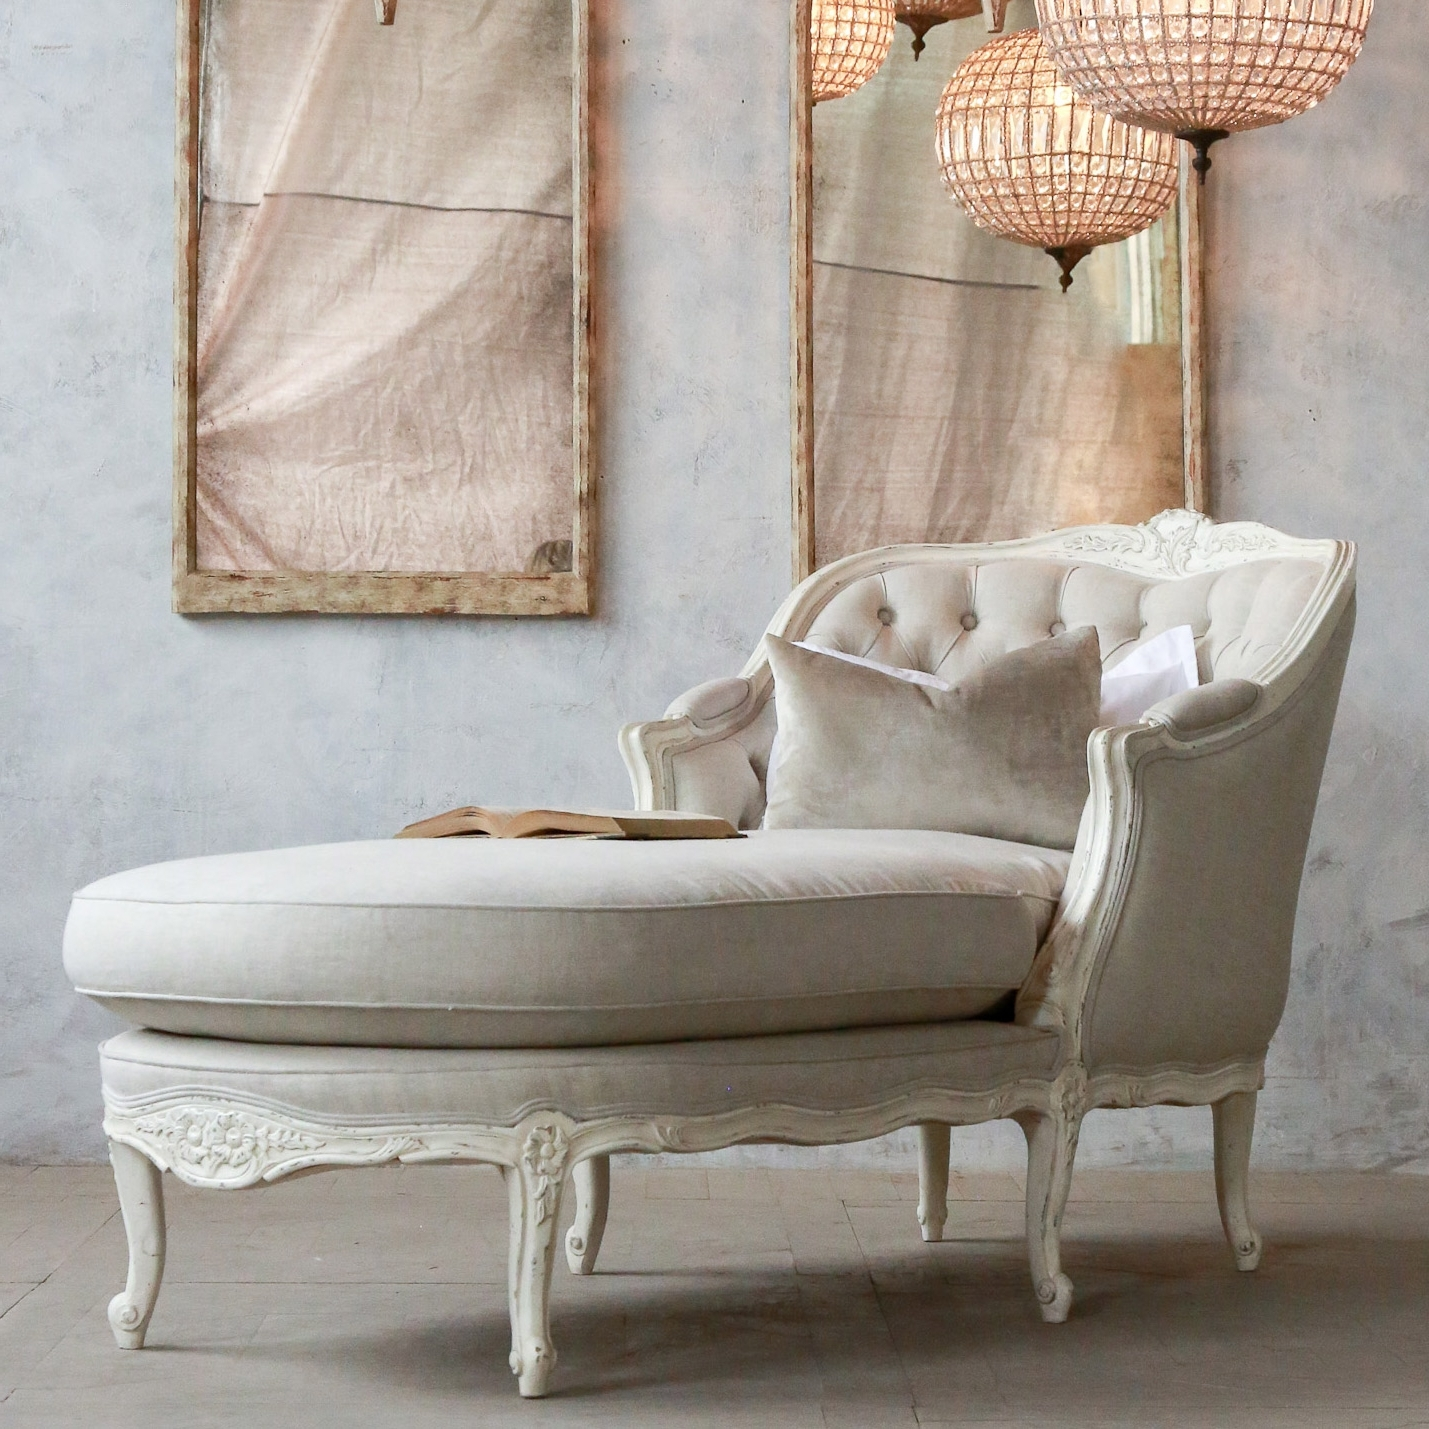 Trendy Vintage Victorian Chaise Lounge – Home Design And Decor For Vintage Chaises (View 9 of 15)